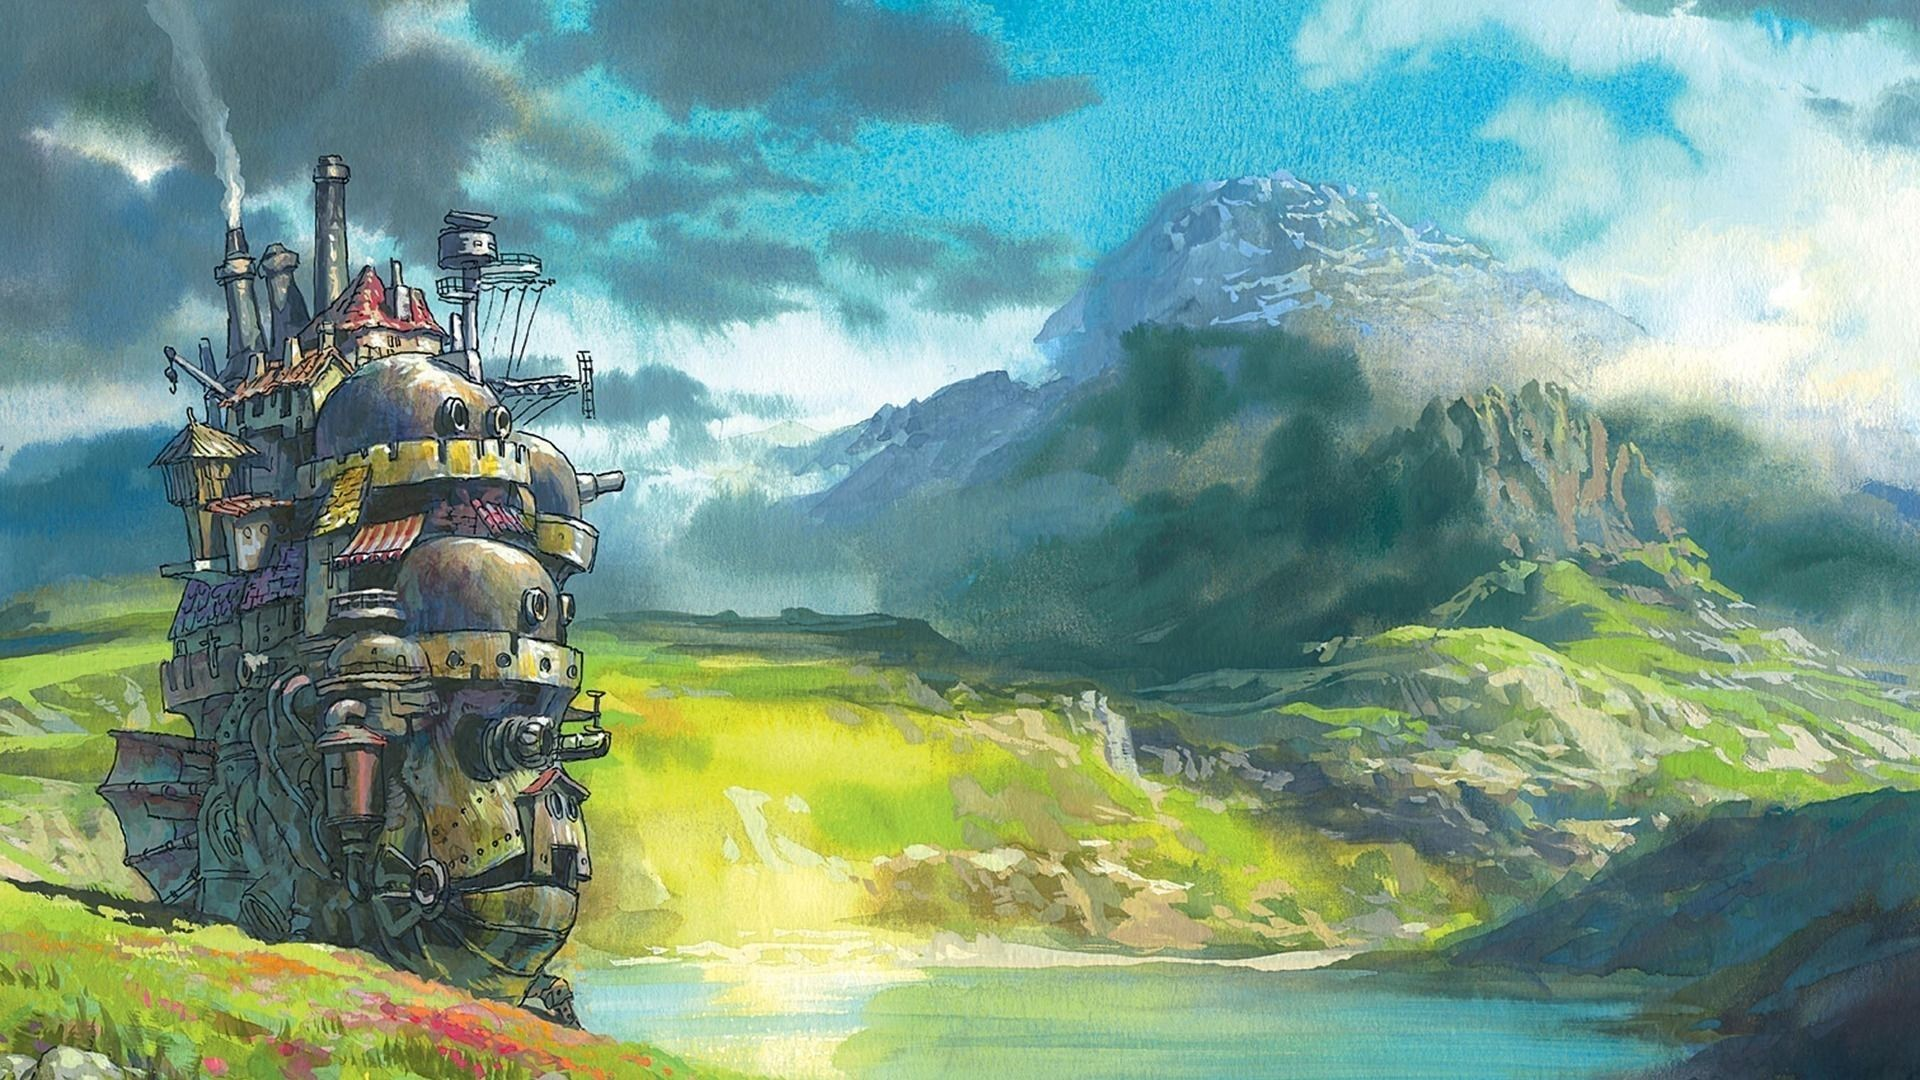 Hd Ghibli Wallpaper 1080